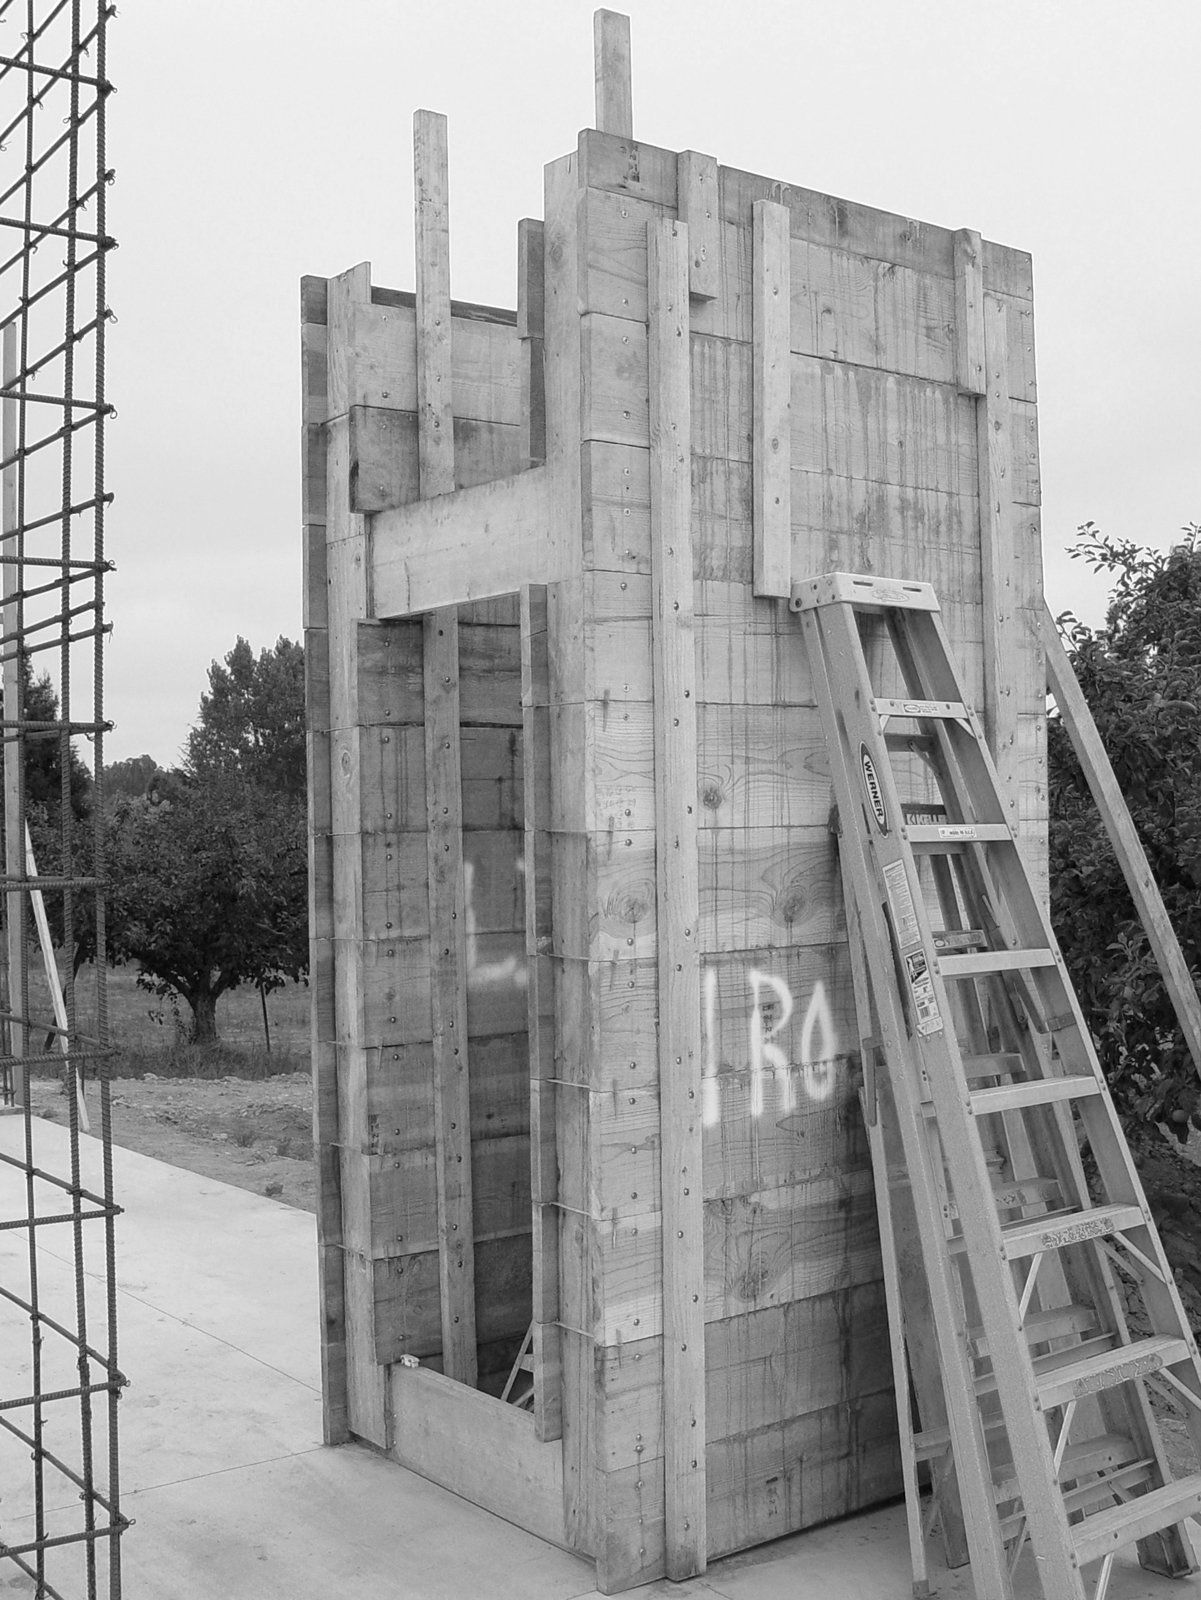 The Andersons designed a system of four-by-four-foot concrete modules, created from a reusable formwork of 2-by-12-foot boards that could be easily moved around the site. By using the units repeatedly, the architects saved on cost and materials as well as scaling the work to be manageable with one concrete truck and a two-person crew. The resulting facades are textured from the rough wooden planks. A Sonoma Prefab That Celebrates a Family's Passion for Cooking - Photo 7 of 18